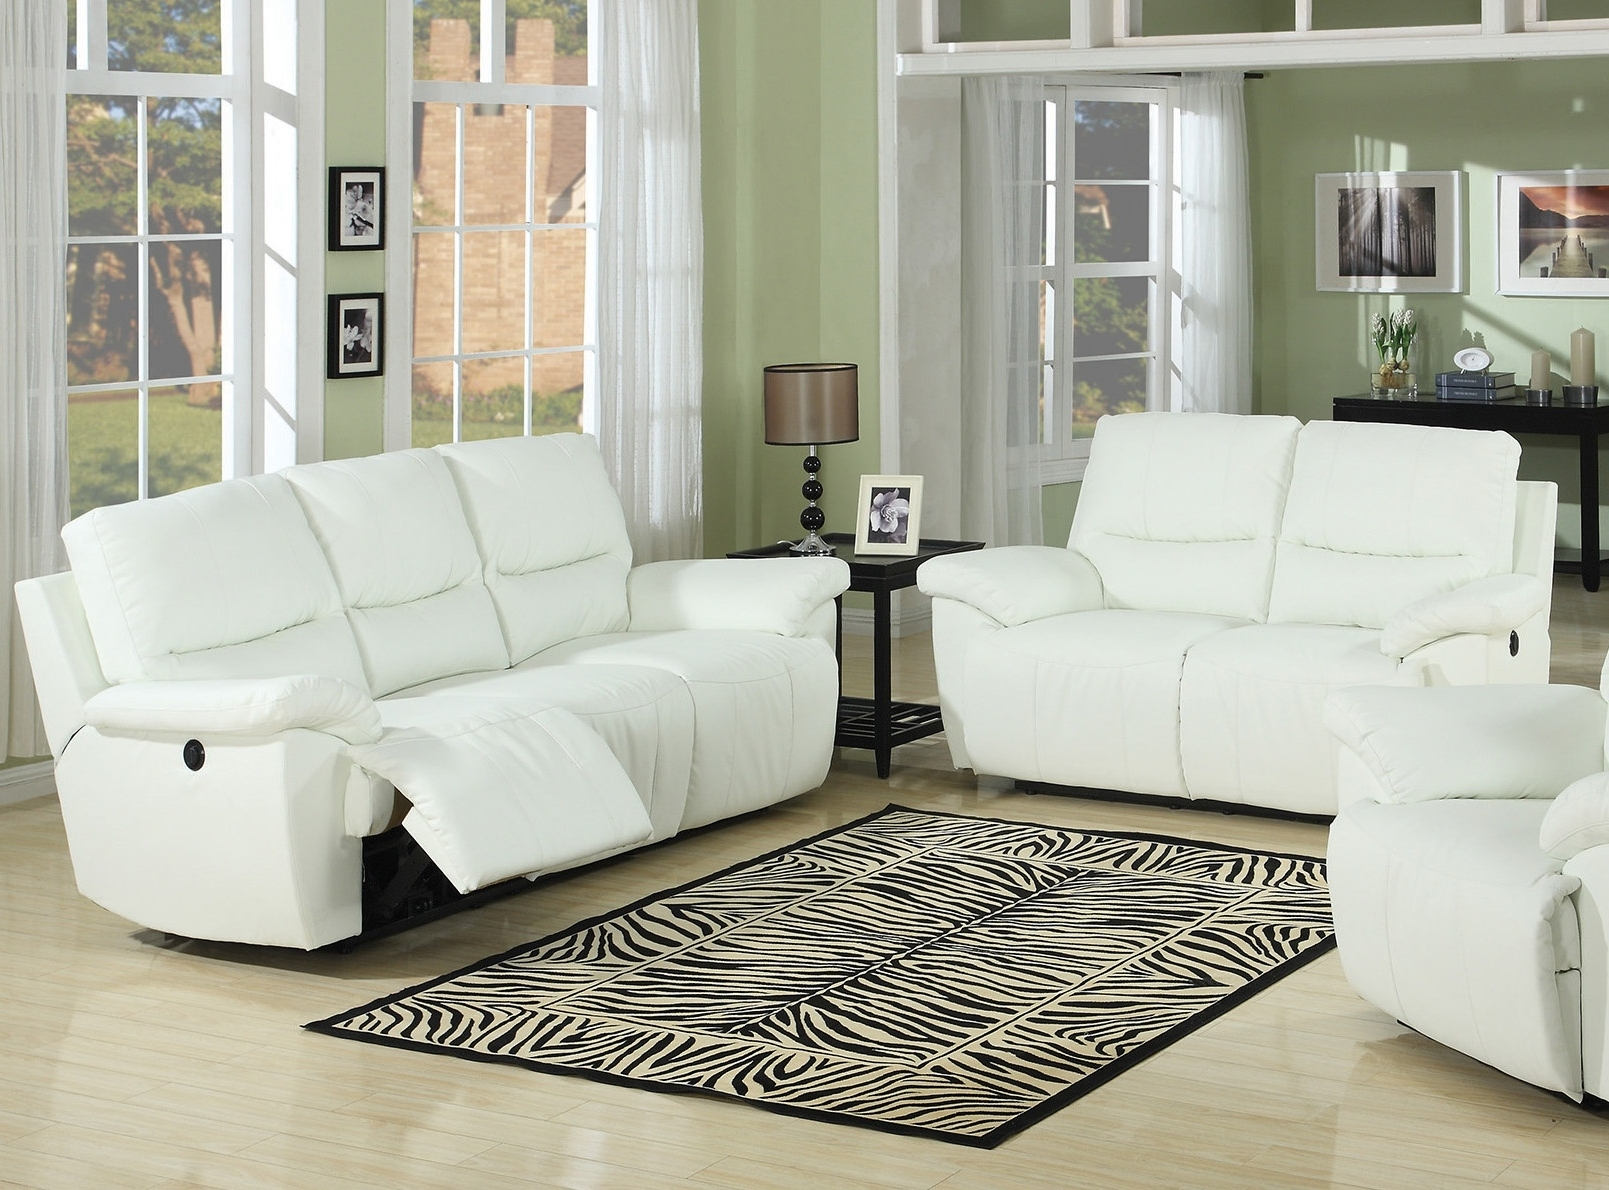 Off White Leather Sofas Throughout Best And Newest White Leather Sofa Sets – Home Design Ideas And Pictures (View 15 of 20)